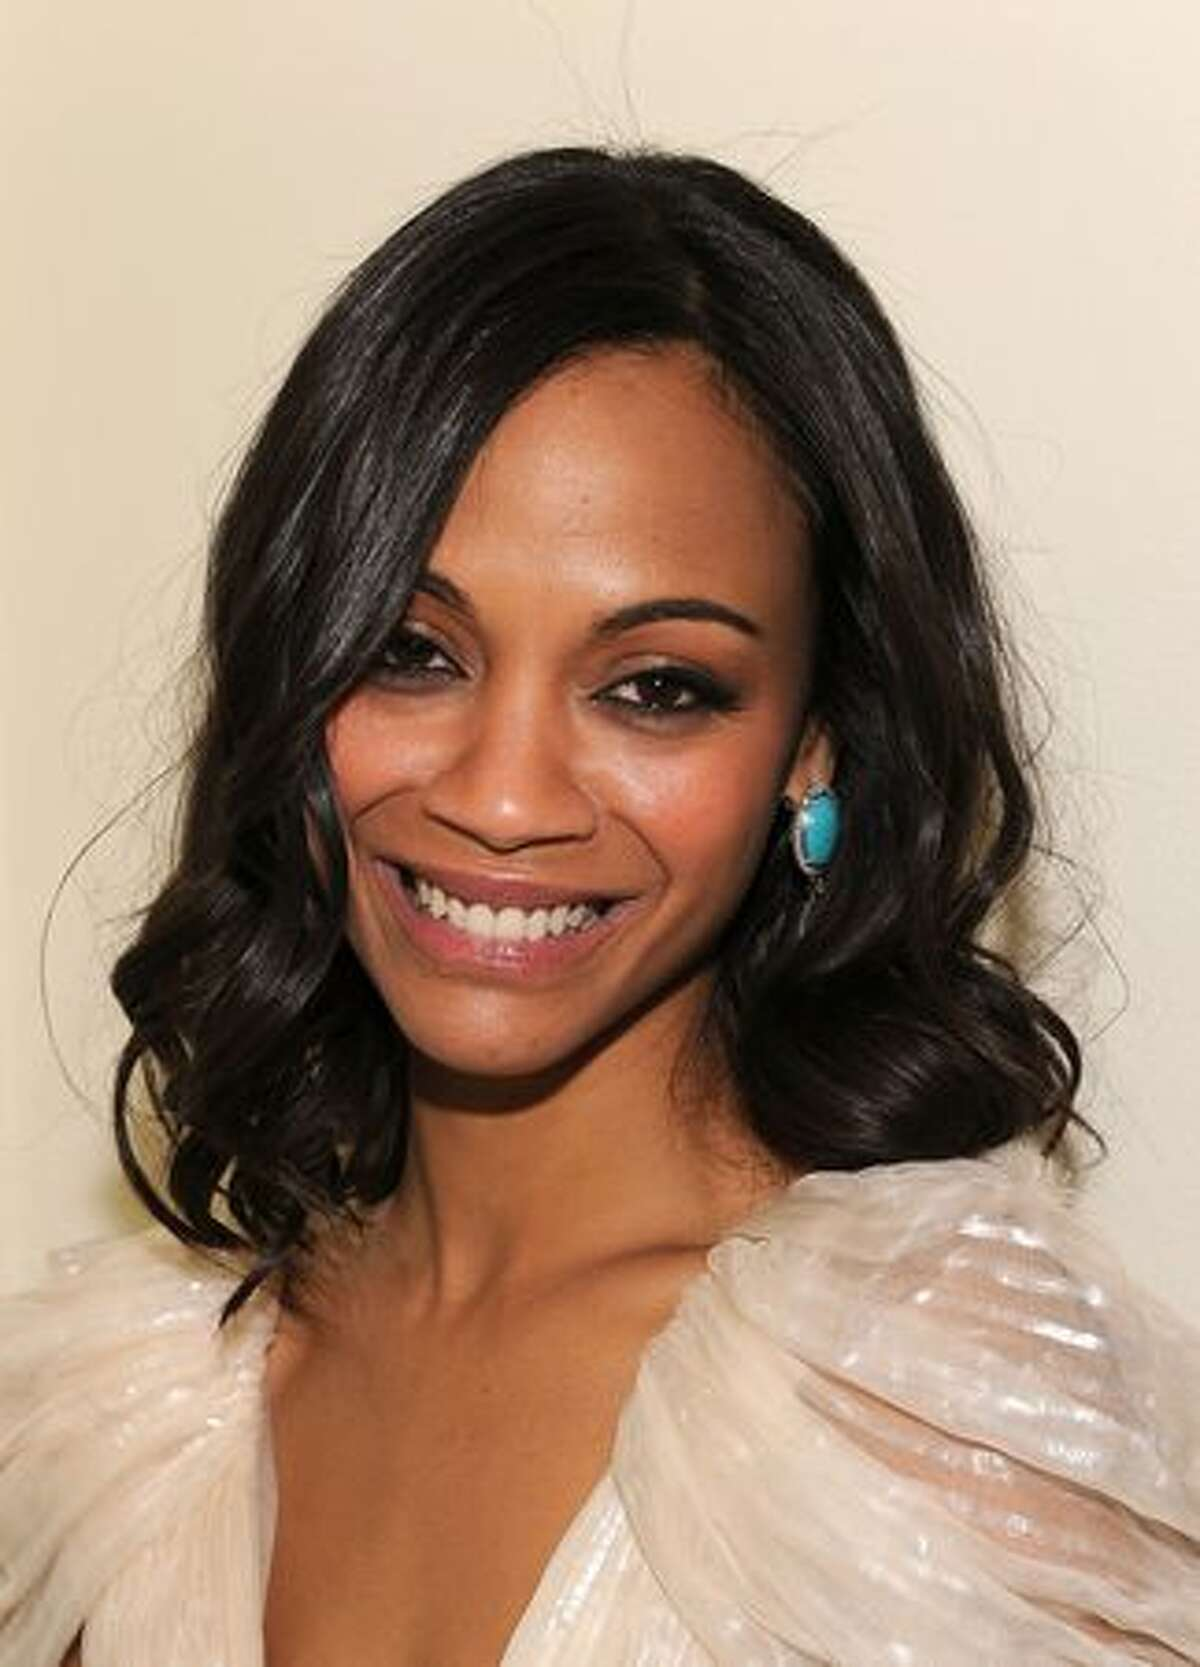 Actress Zoe Saldana at the Golden Globes party hosted by T Magazine and Dom Perignon at Chateau Marmont in Los Angeles, California.